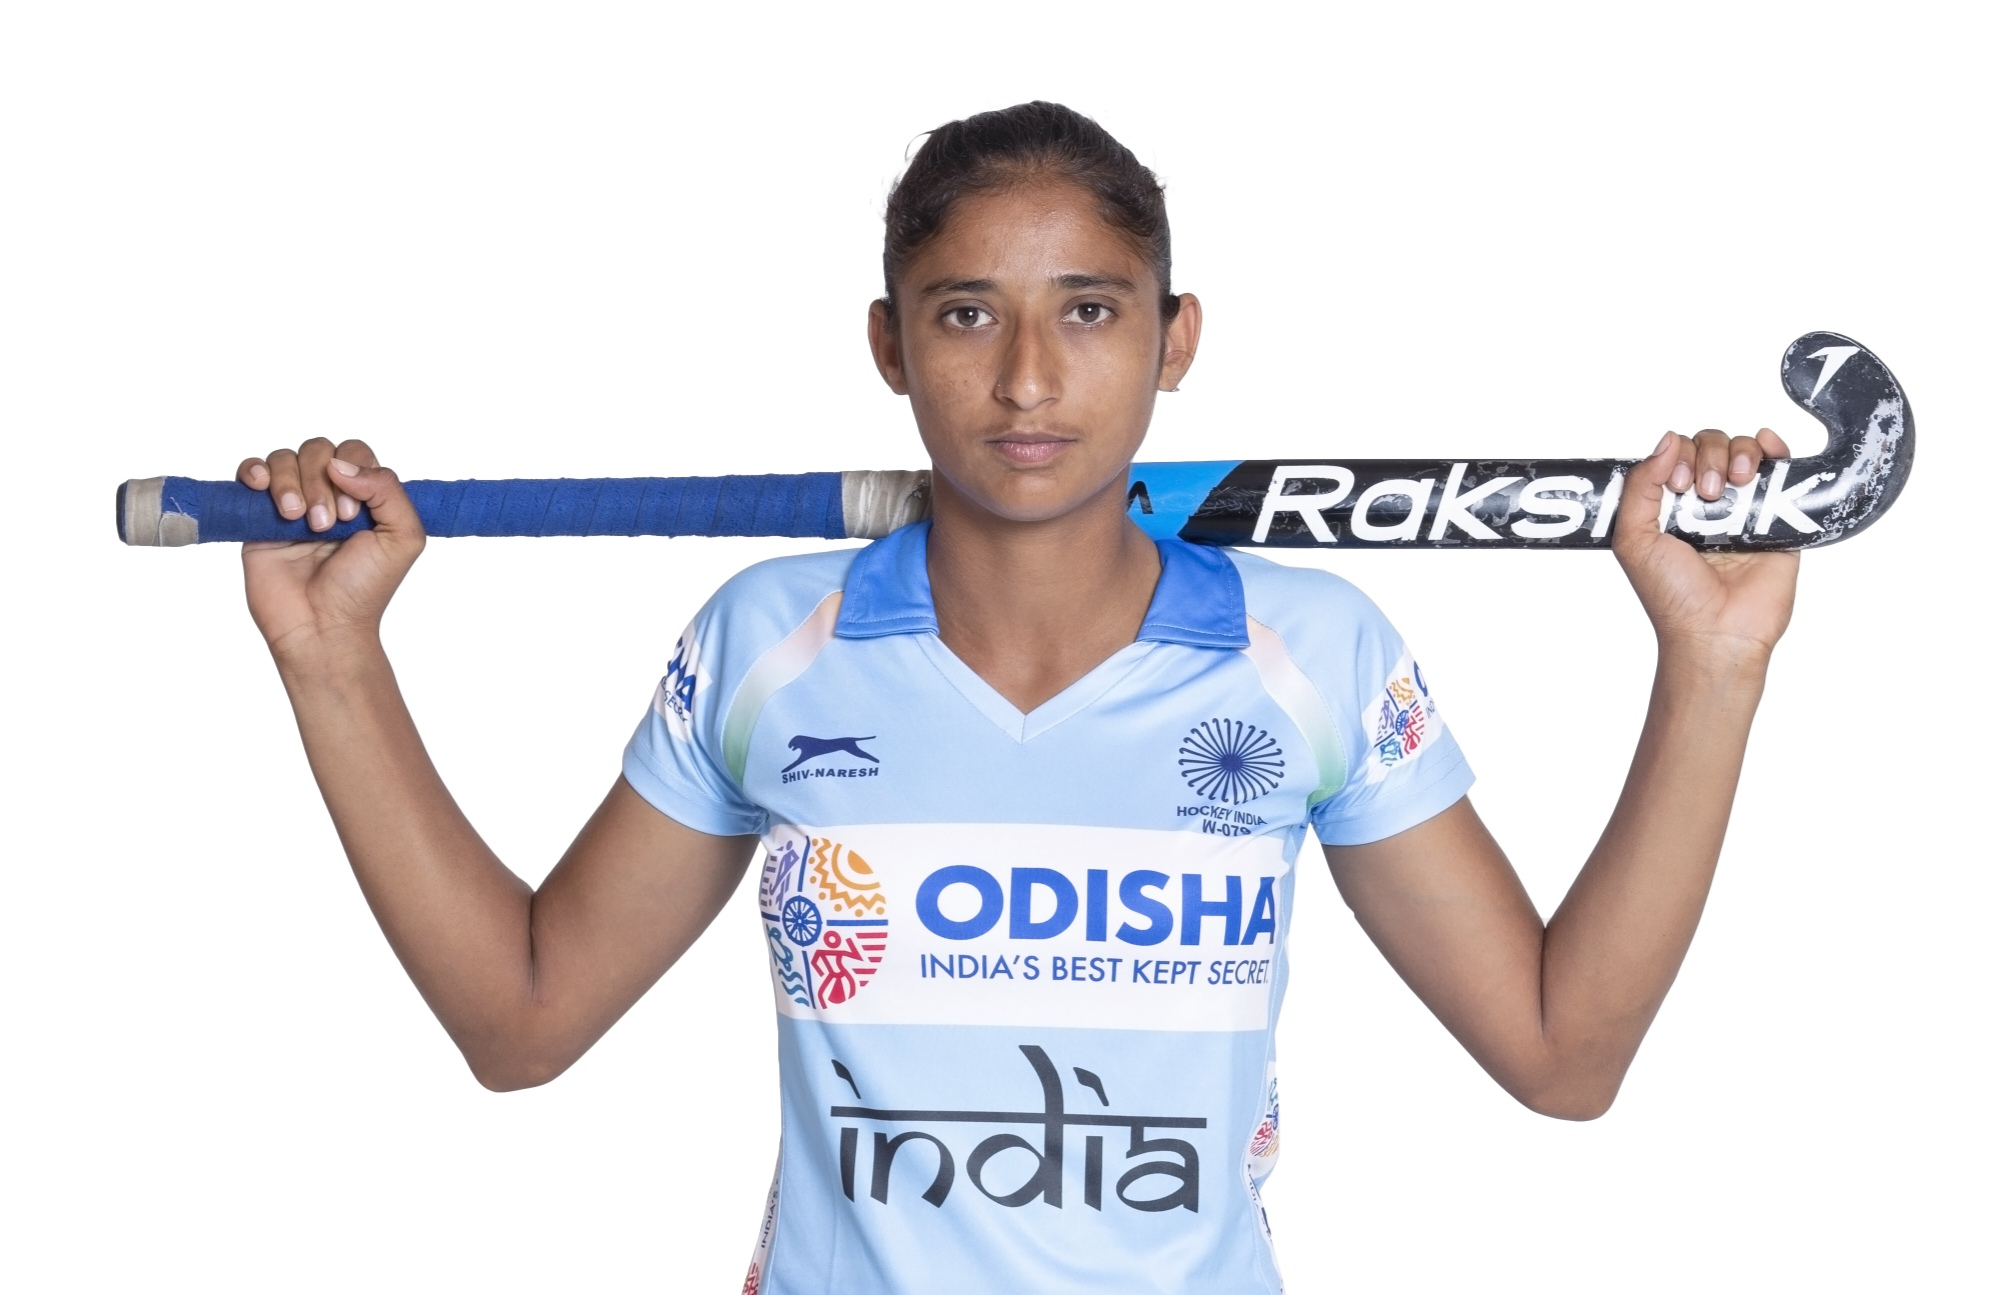 """Rani's struggle and rise as a player gives me hope for the future,"" says Rajwinder Kaur"